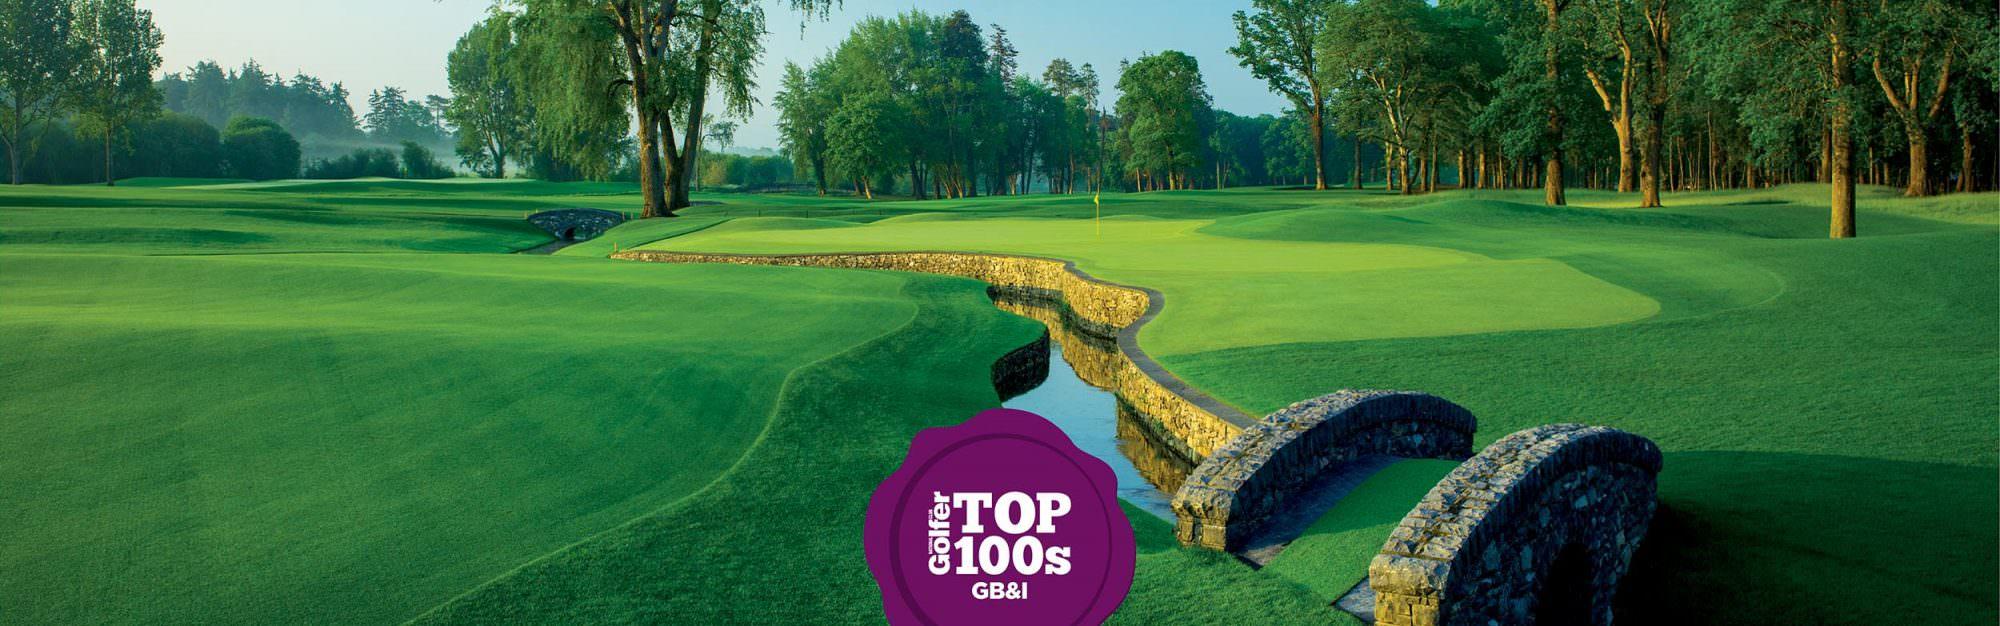 NCG's Top 100 Golf Courses in Great Britain and Ireland